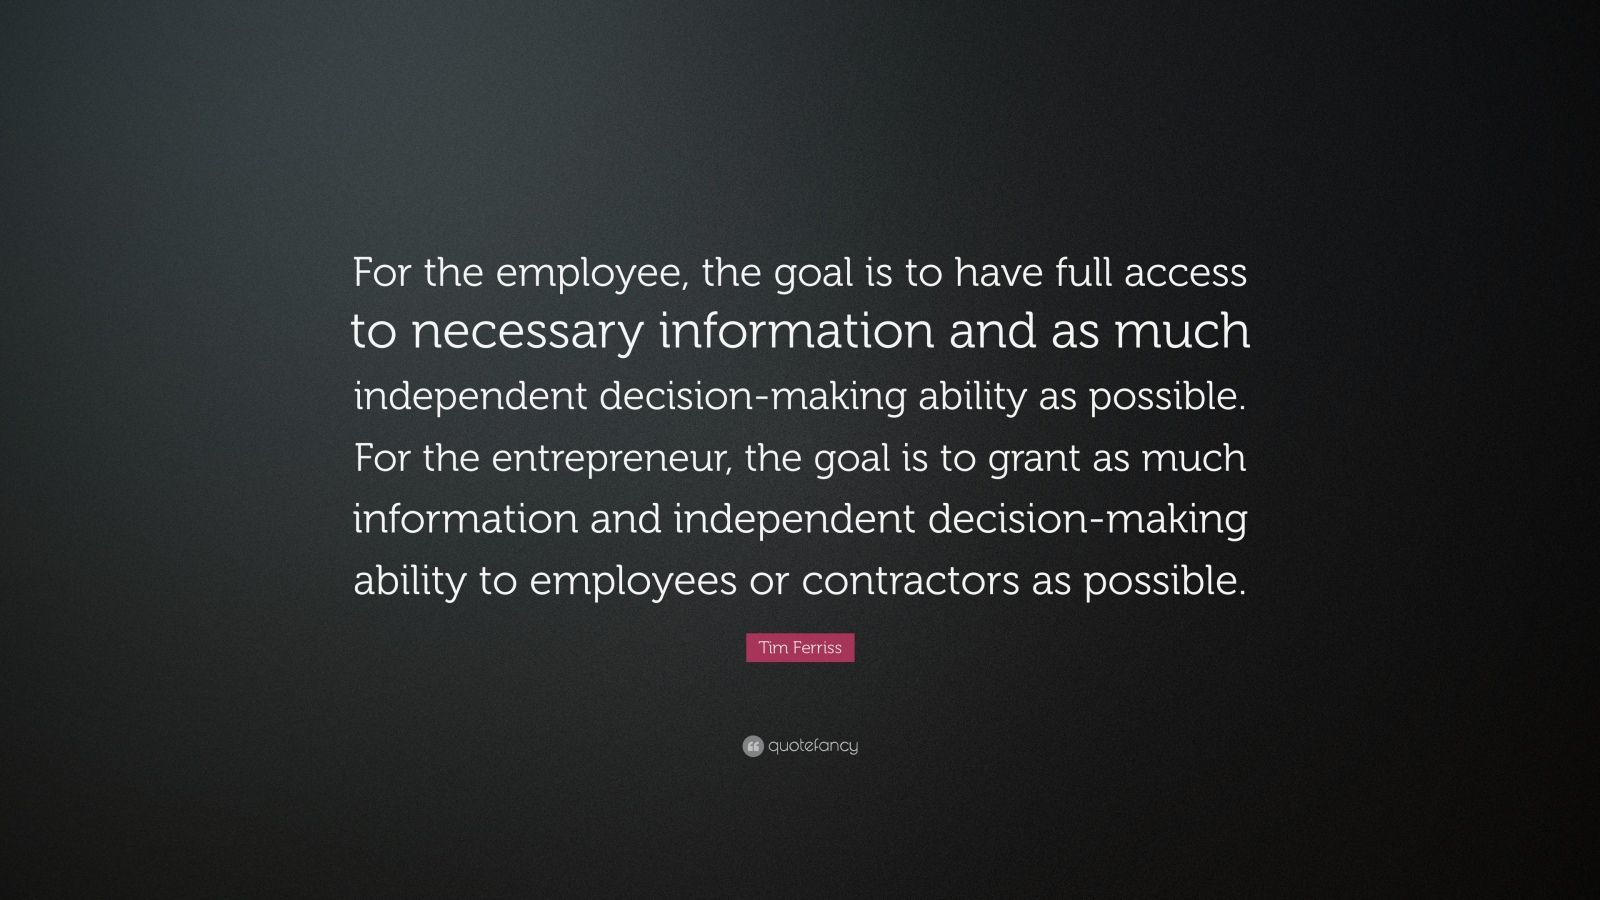 "Tim Ferriss Quote: ""For the employee, the goal is to have full access to necessary information and as much independent decision-making ability as possible. For the entrepreneur, the goal is to grant as much information and independent decision-making ability to employees or contractors as possible."""